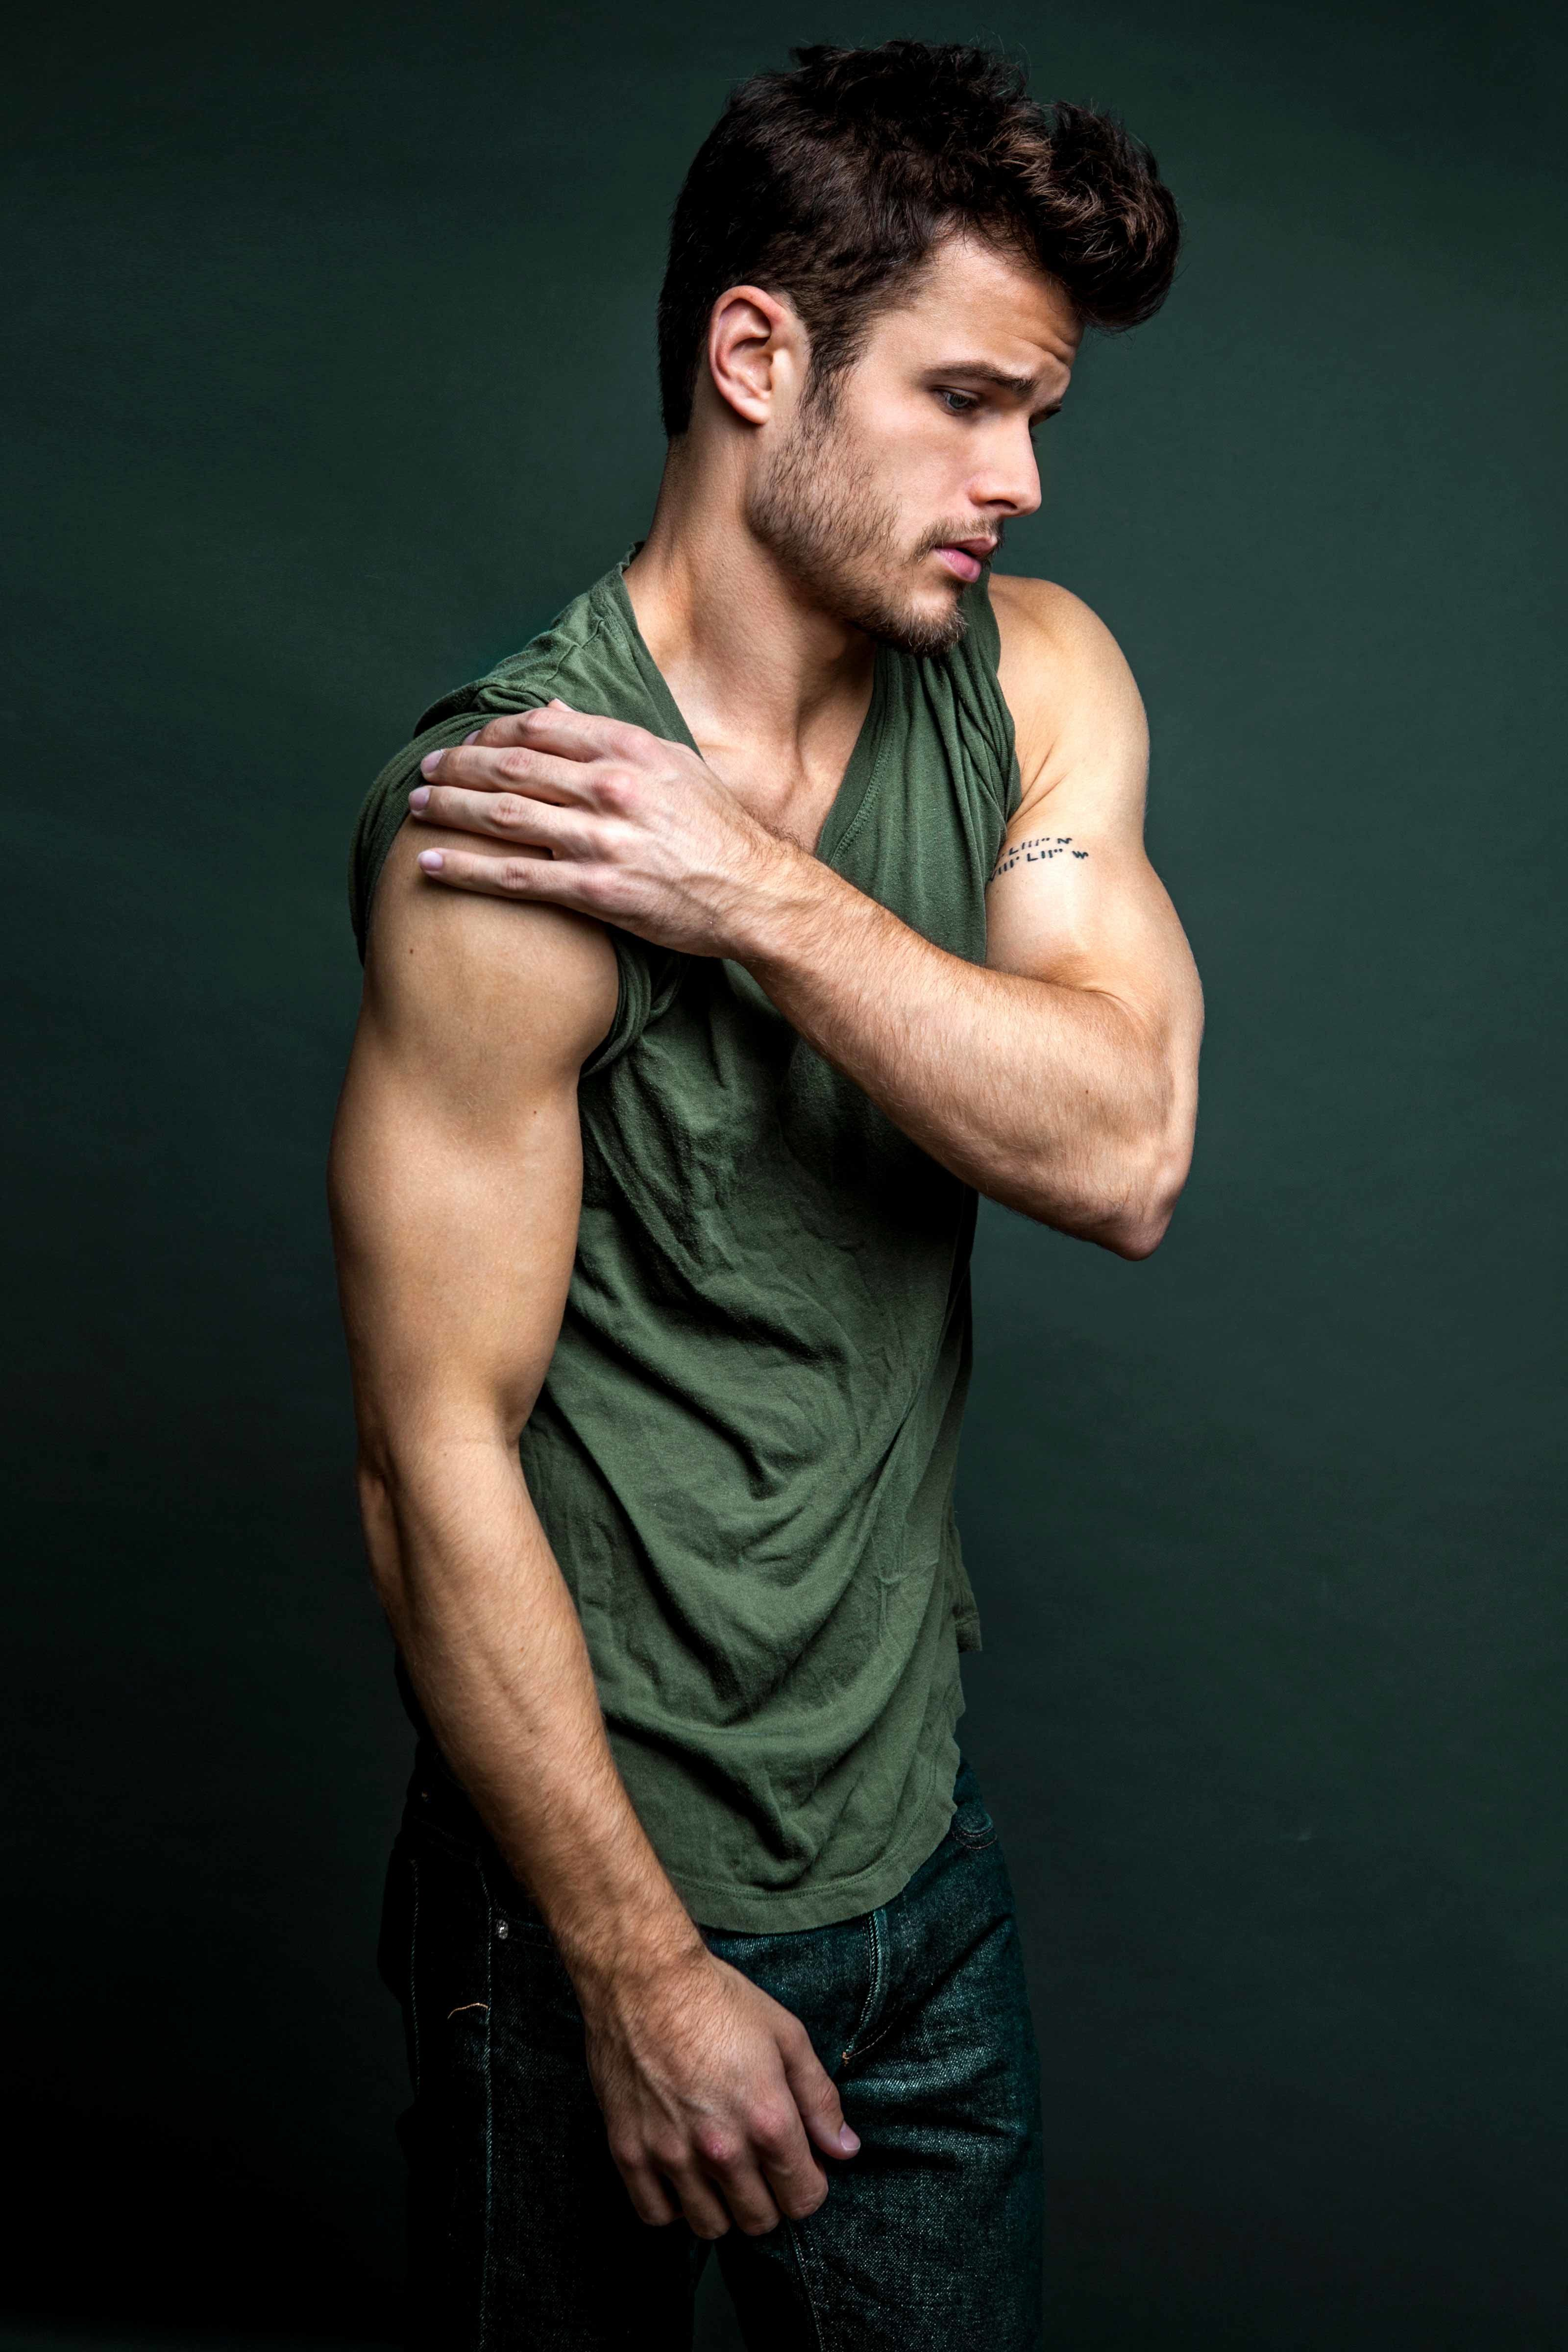 Michael Mealor of The Young and the Restless shows off his muscled biceps.